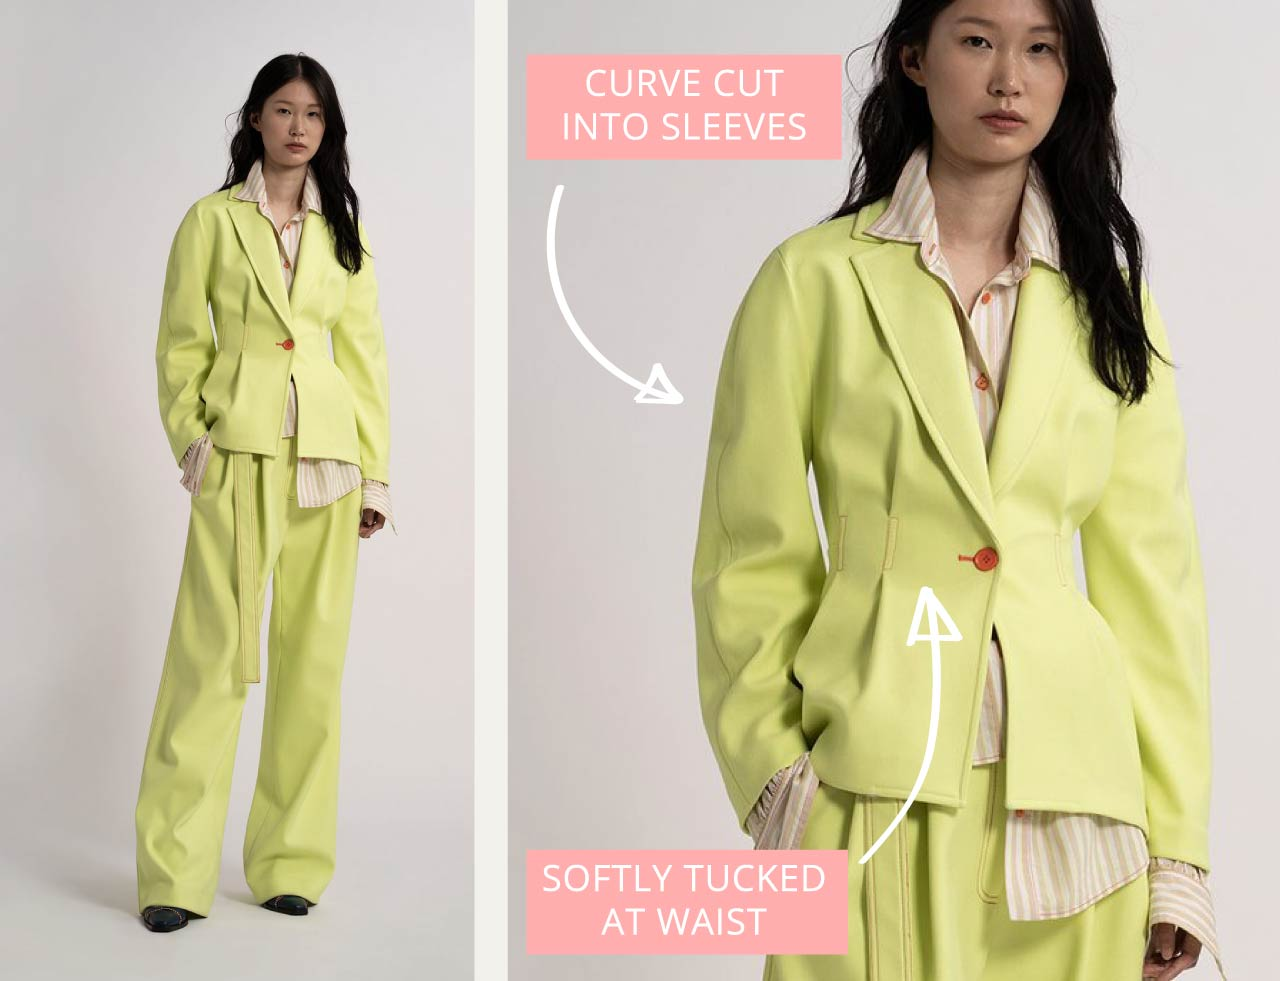 Sies Marjan Jacket Details | The Cutting Class. Jacket silhouette with tucks at waist and gently curved sleeve.